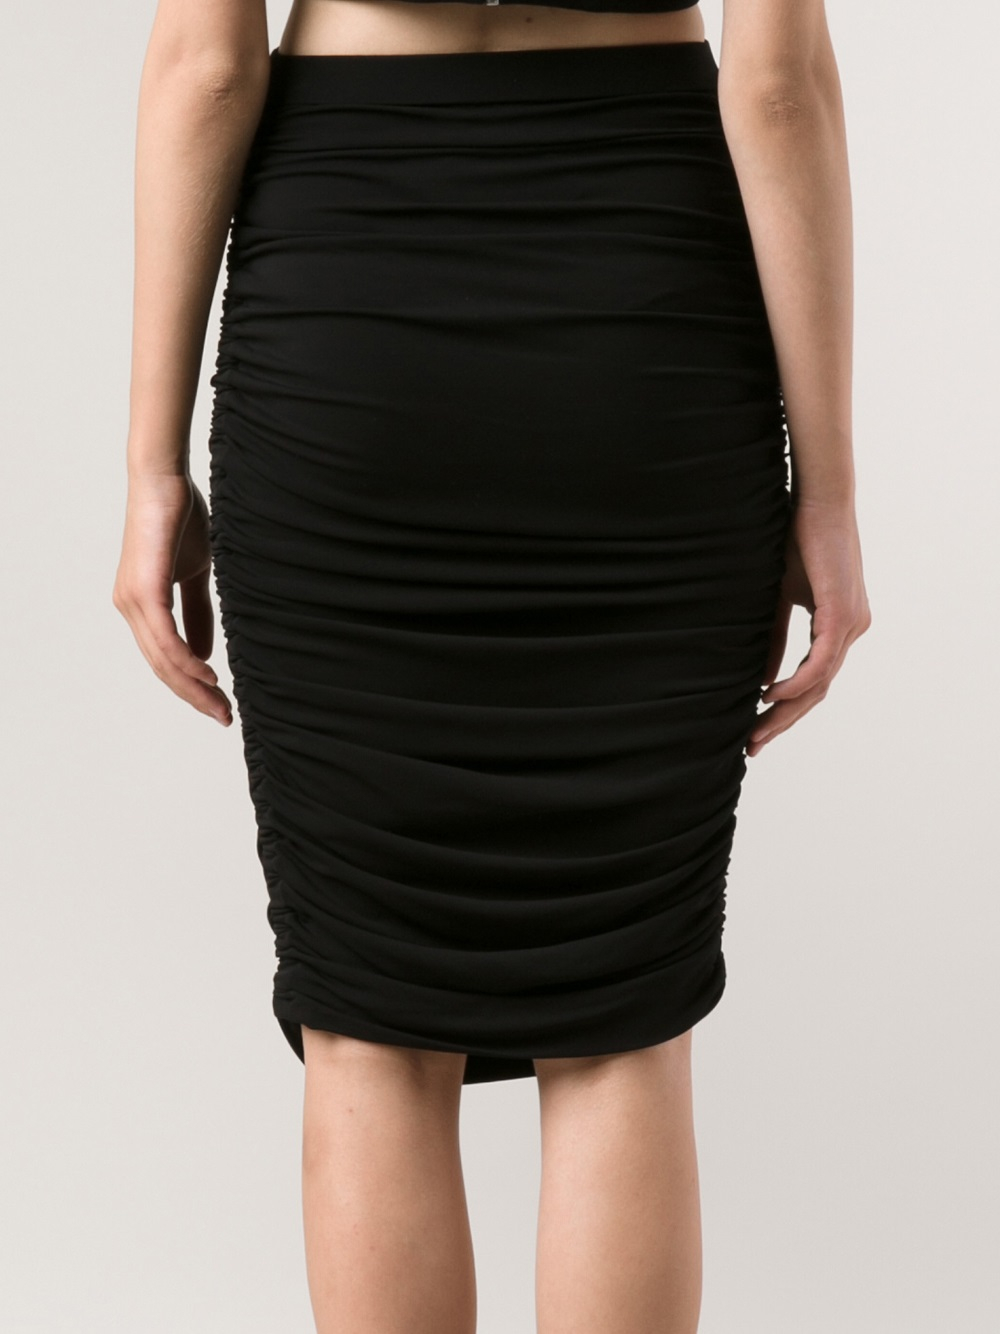 Find great deals on eBay for ruched skirt. Shop with confidence.